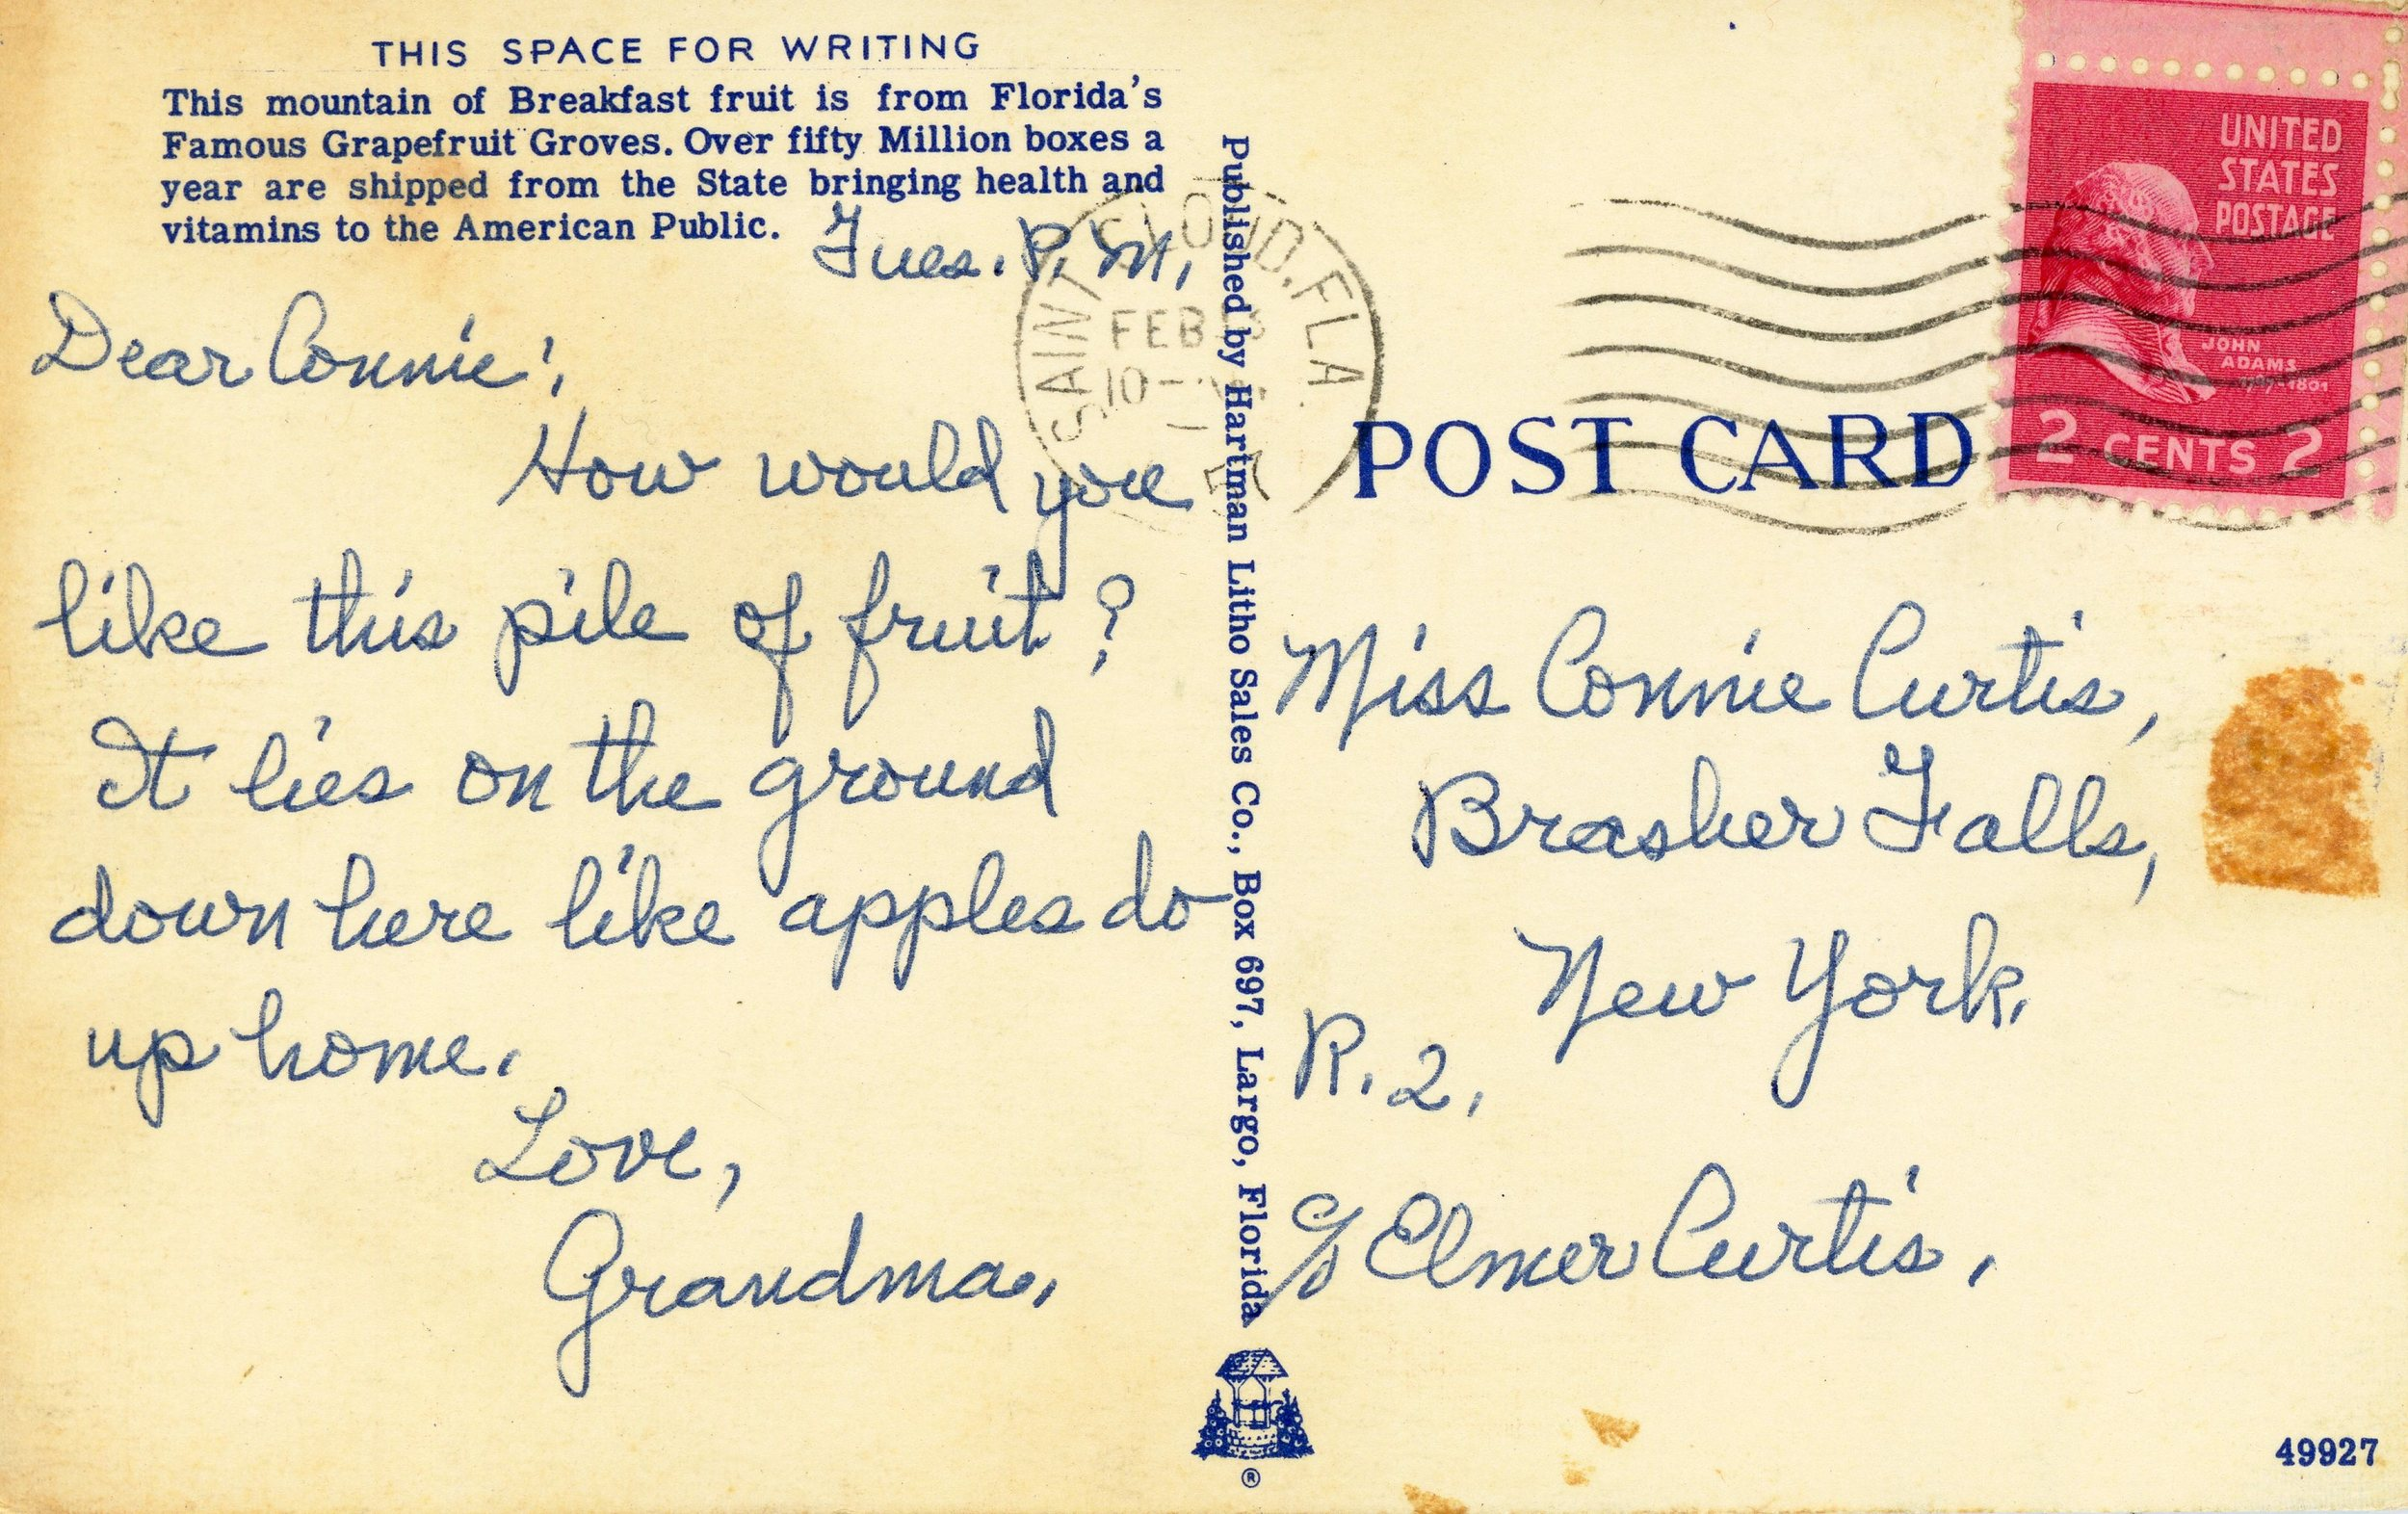 """Sent from Saint Cloud, FL, on February 13, 1957 to Brasher Falls, NY. """"Dear Connie, How would you like this pile of fruit? It lies on the ground down here like apples do up home. Love, Grandma."""""""